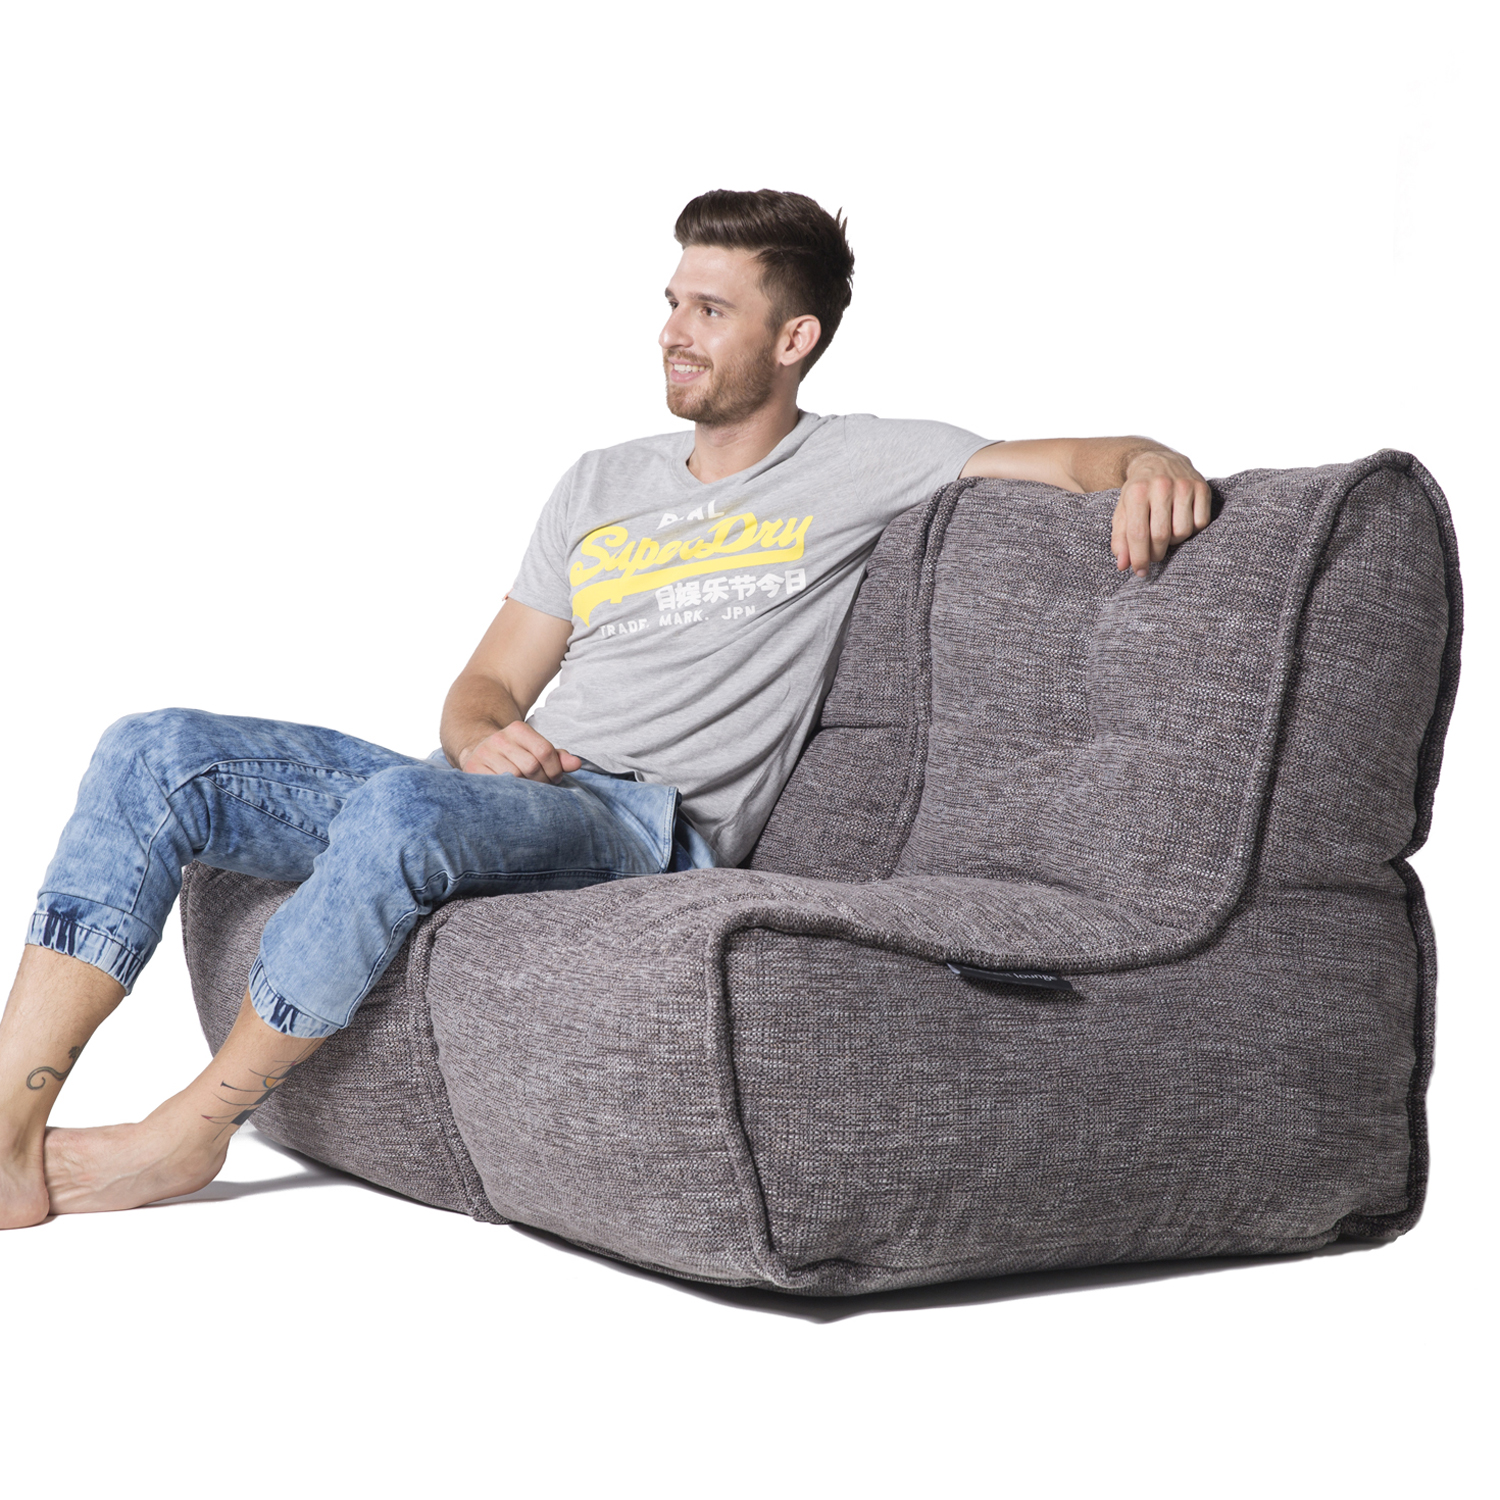 4 Seater Sofa Australia 2 Seater Gery Sofa Designer Bean Bag Couch Grey Fabric